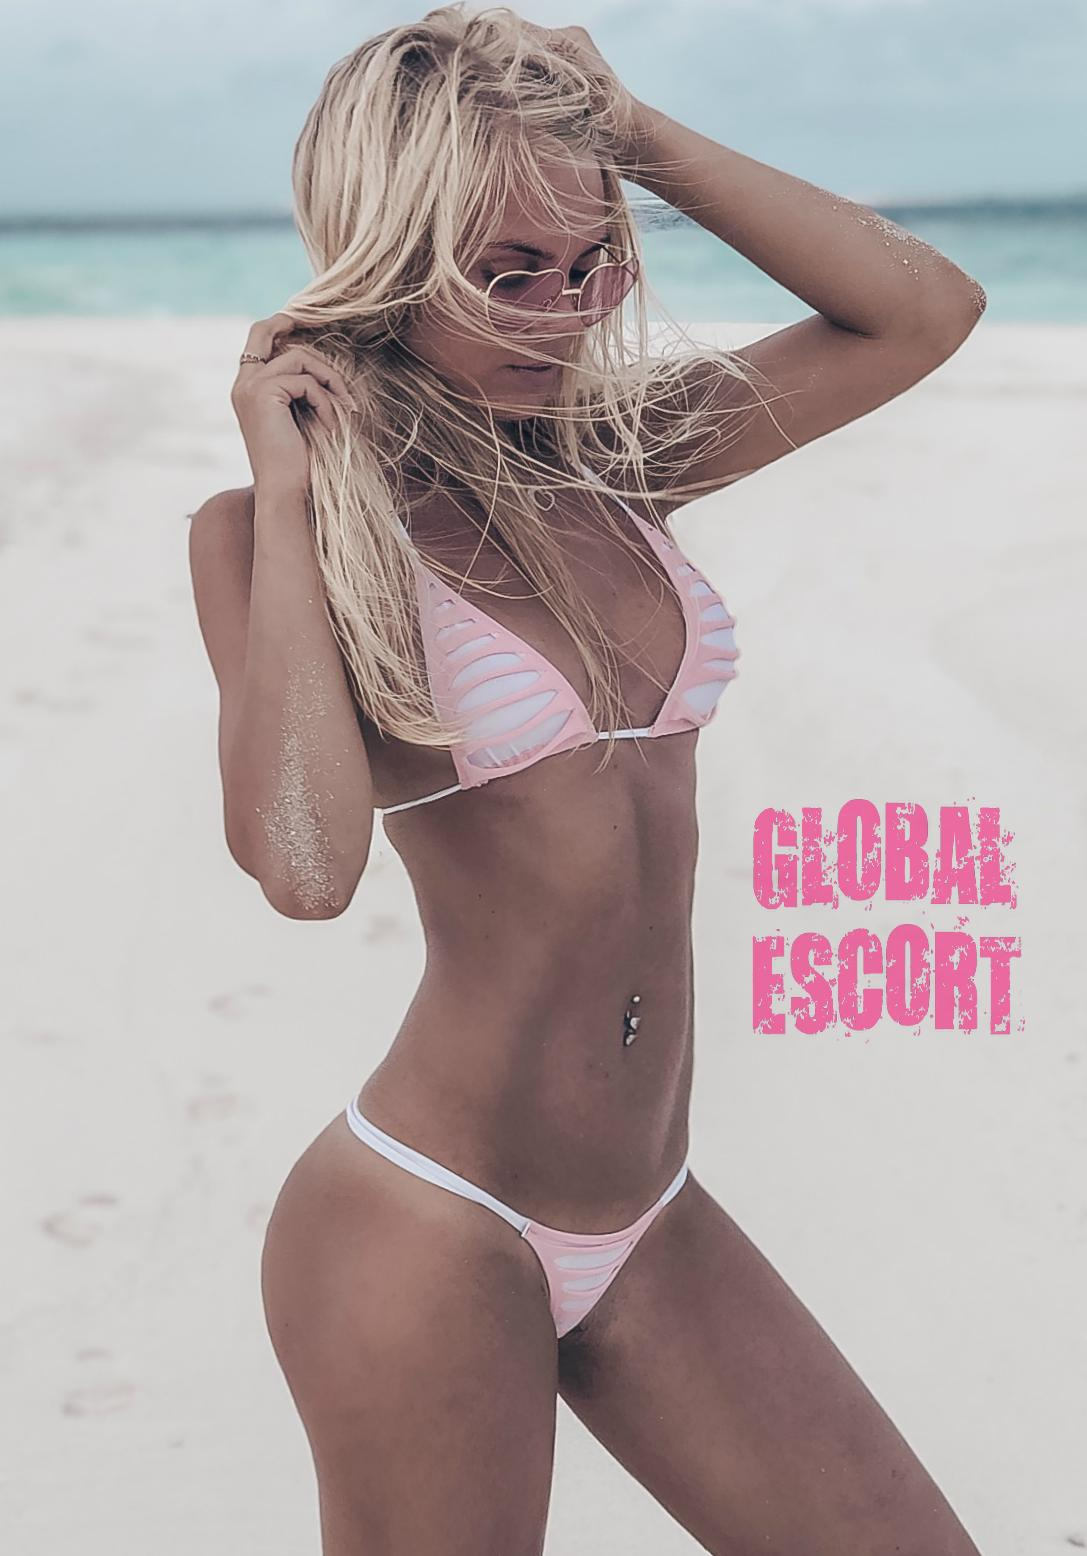 young escort model Dasha in a pink swimsuit posing on the beach